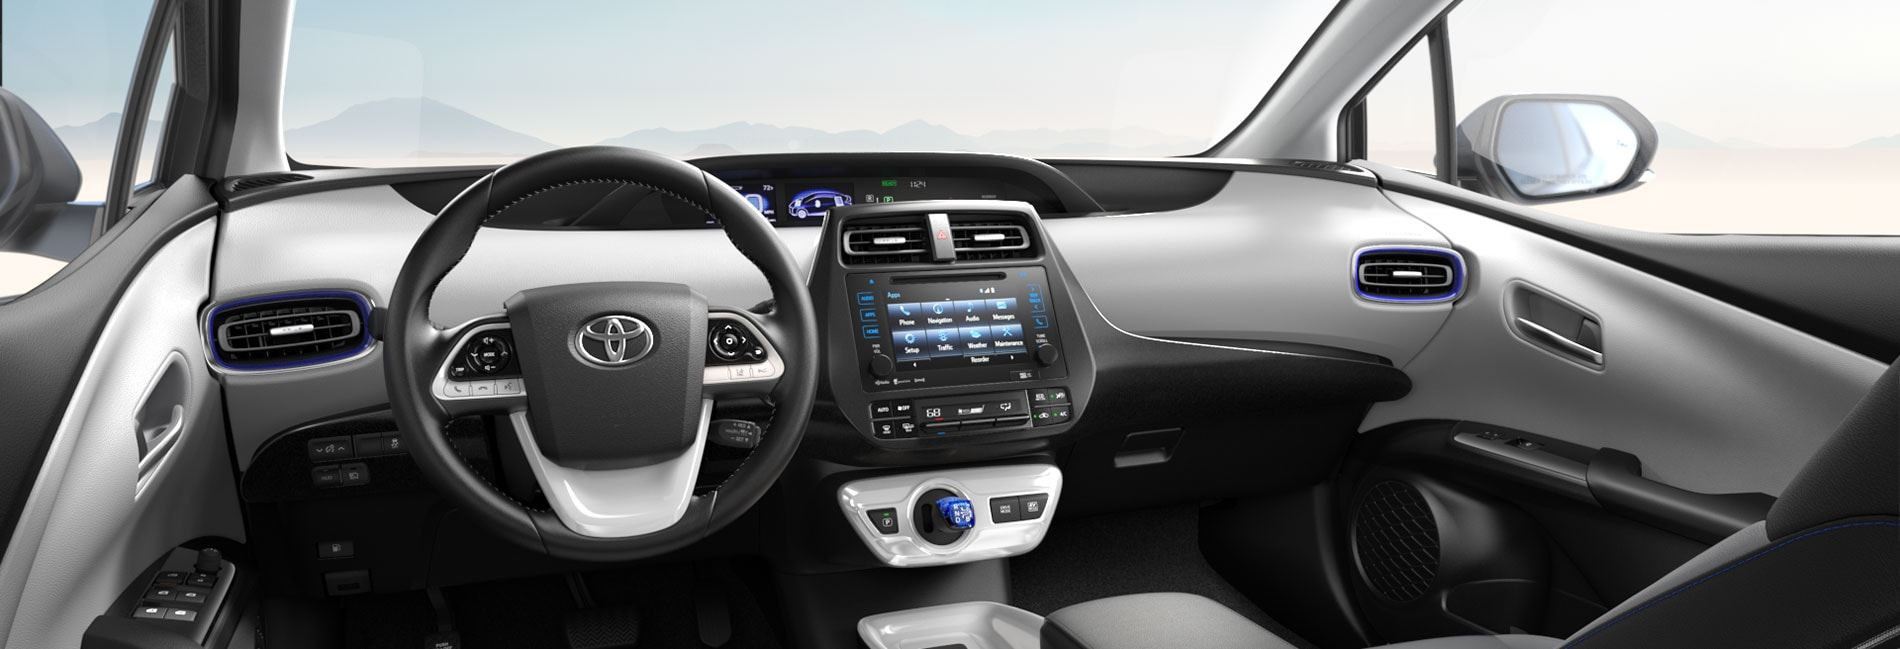 Toyota Prius Interior Vehicle Features